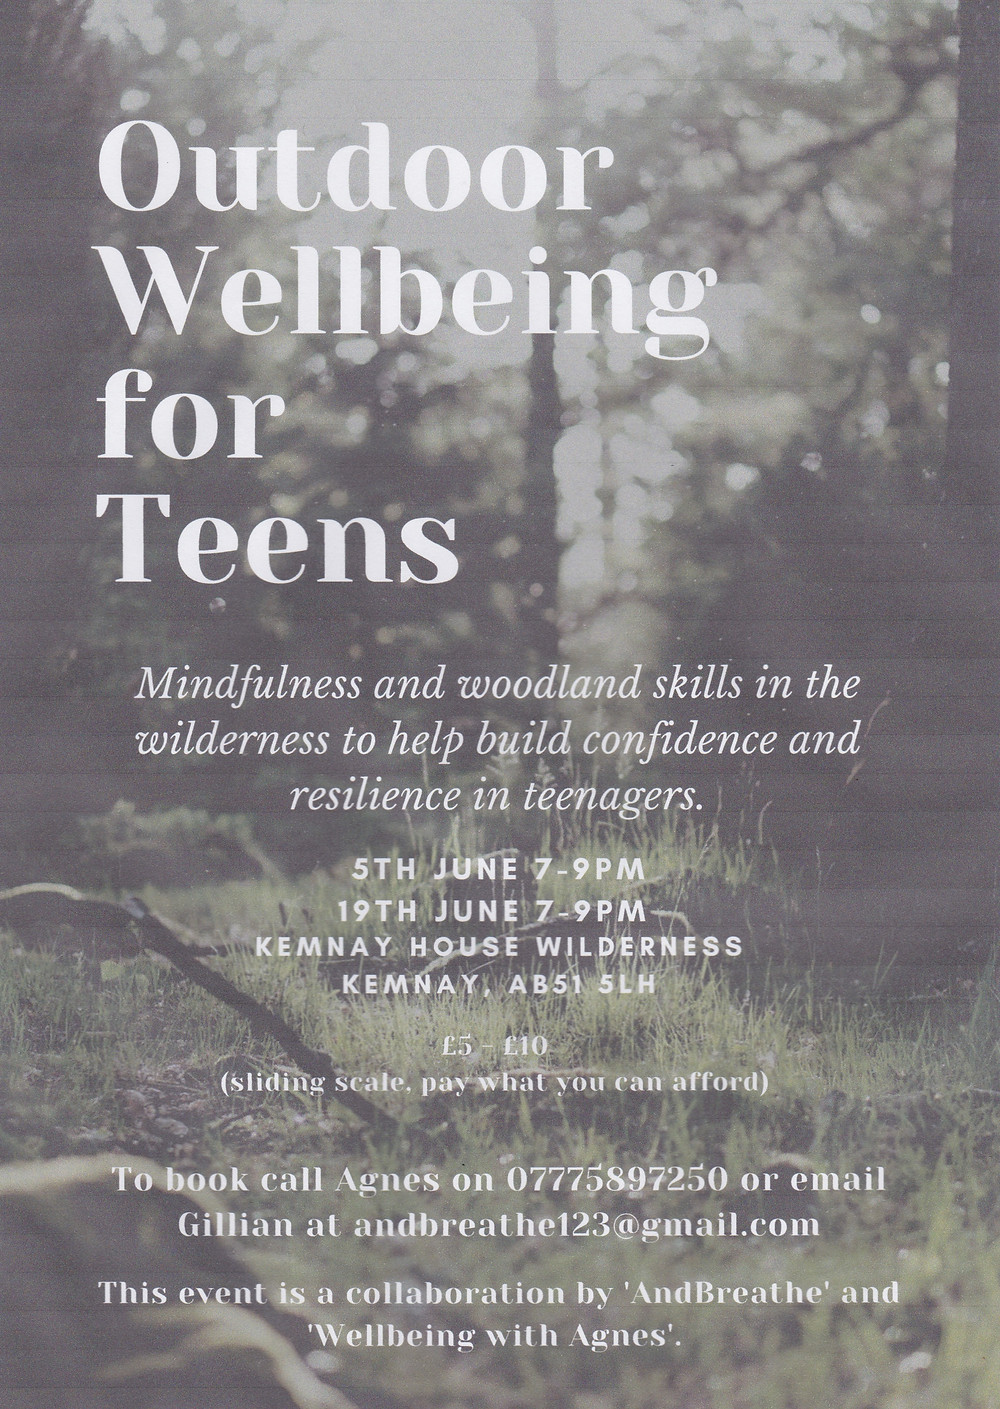 outdoor wellbeing course for teens